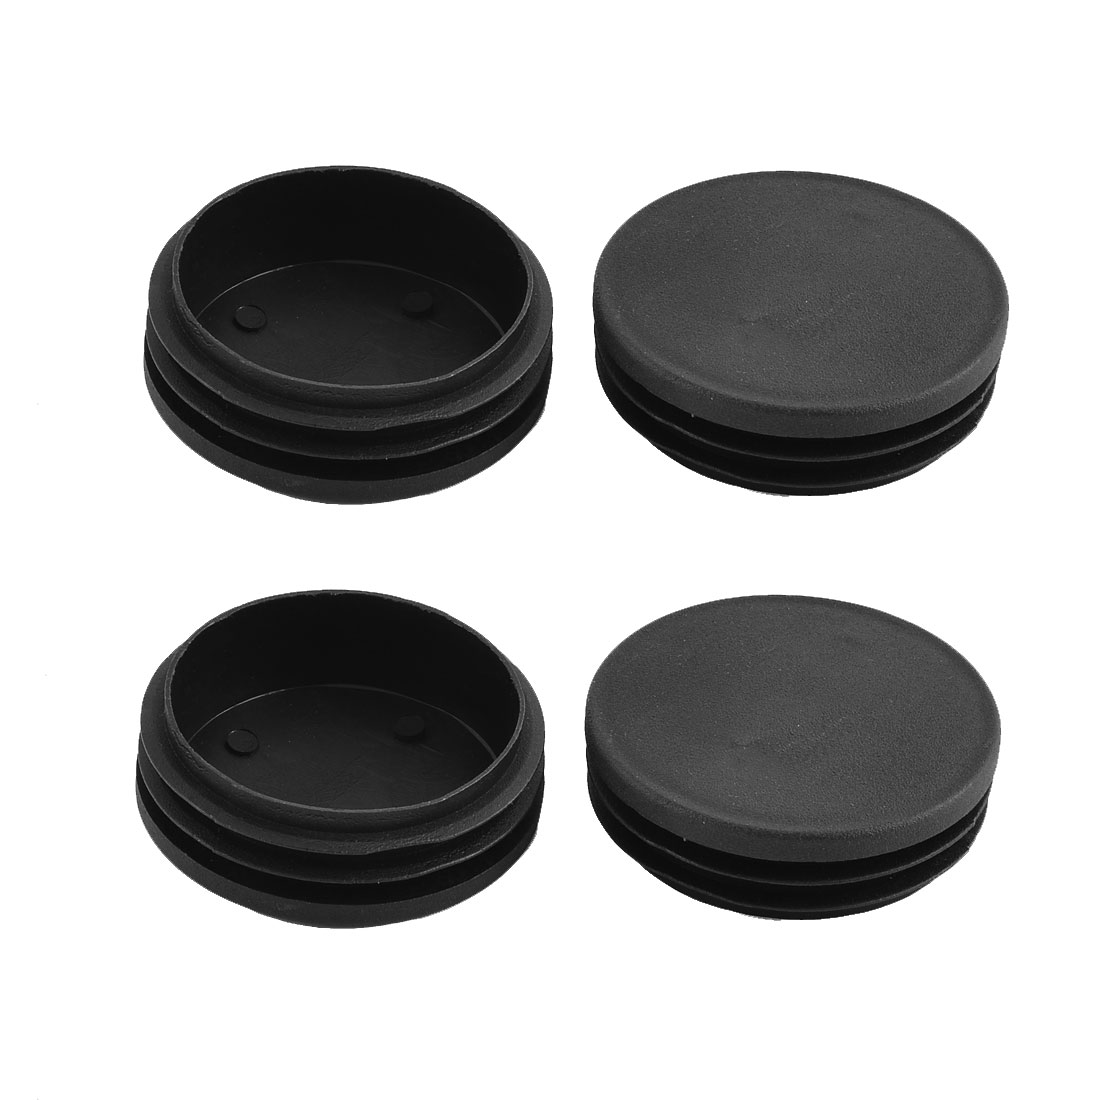 Home Office Table Chair Foot Plastic Round Tube Insert Cover Black 74mm Dia 4pcs